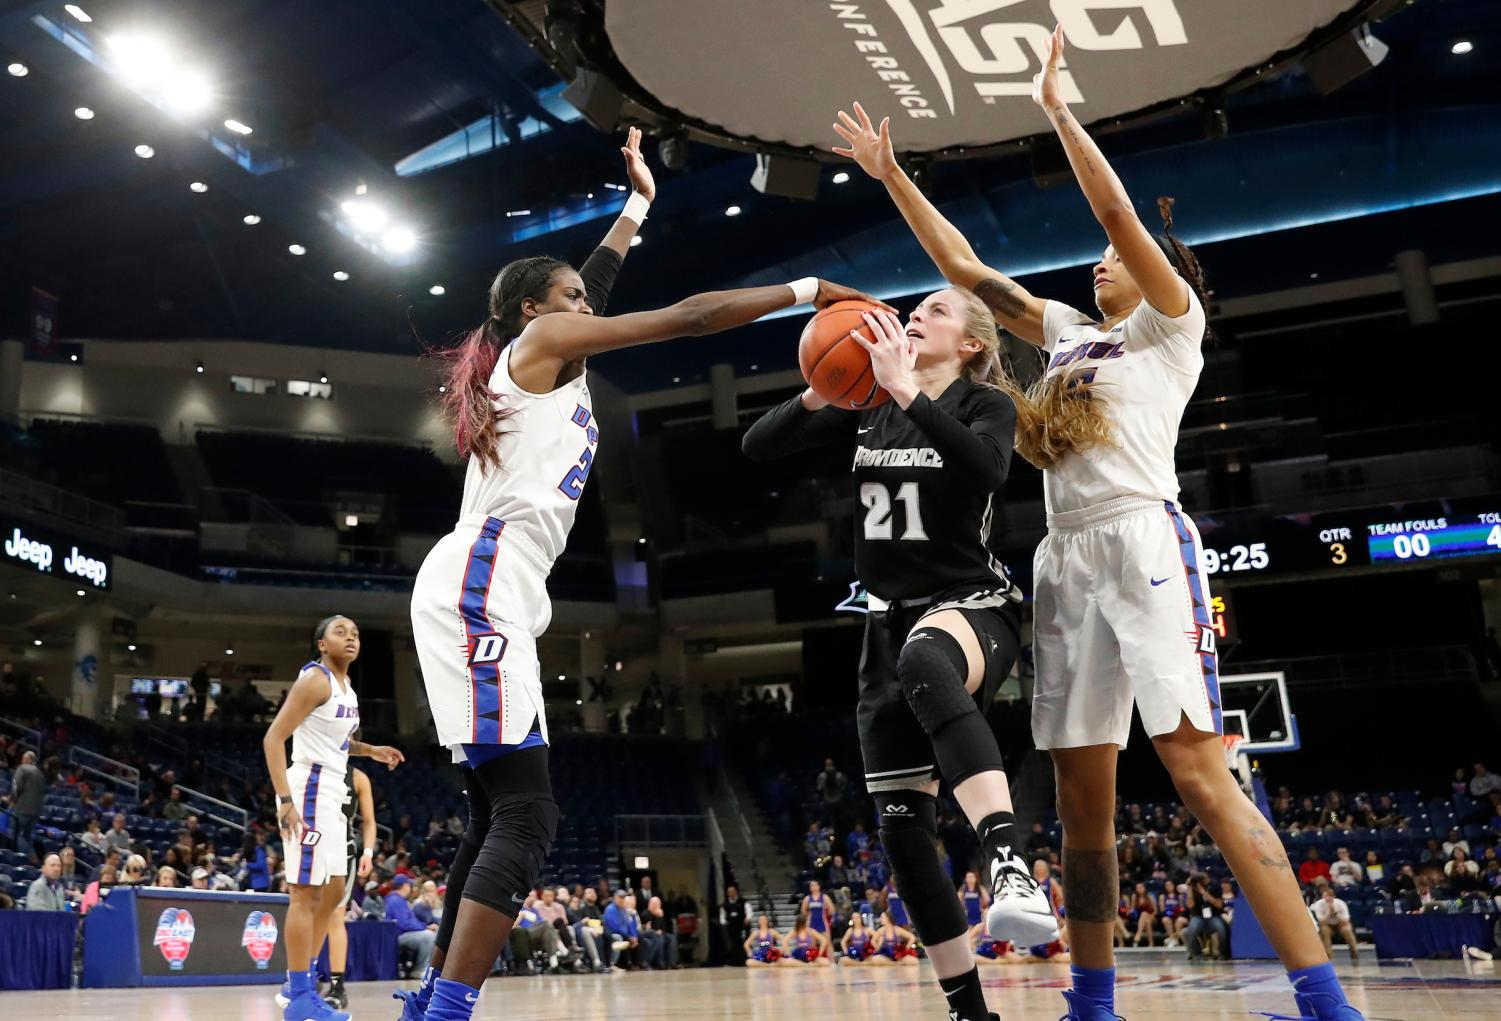 DePaul junior forward Chante Stonewall blocks a layup attempt by Providence senior Maddie Jolin during the third quarter of the Blue Demons win over the Friars Sunday night at Wintrust Arena. Steve Woltmann/BIG EAST